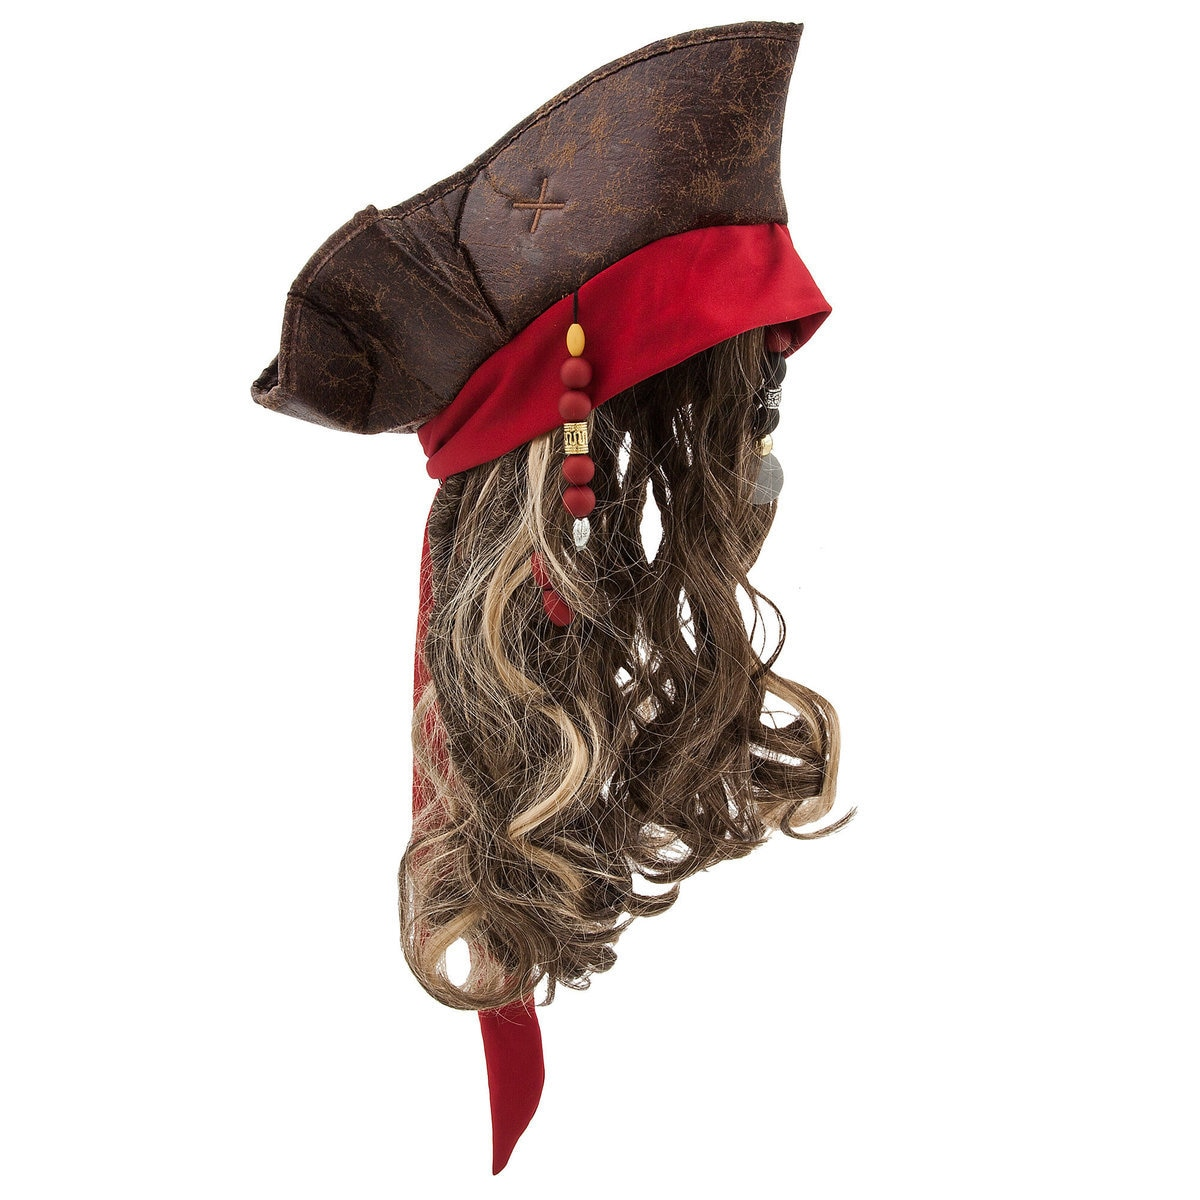 48e7e78d364 Product Image of Jack Sparrow Pirate Hat and Wig for Kids   3